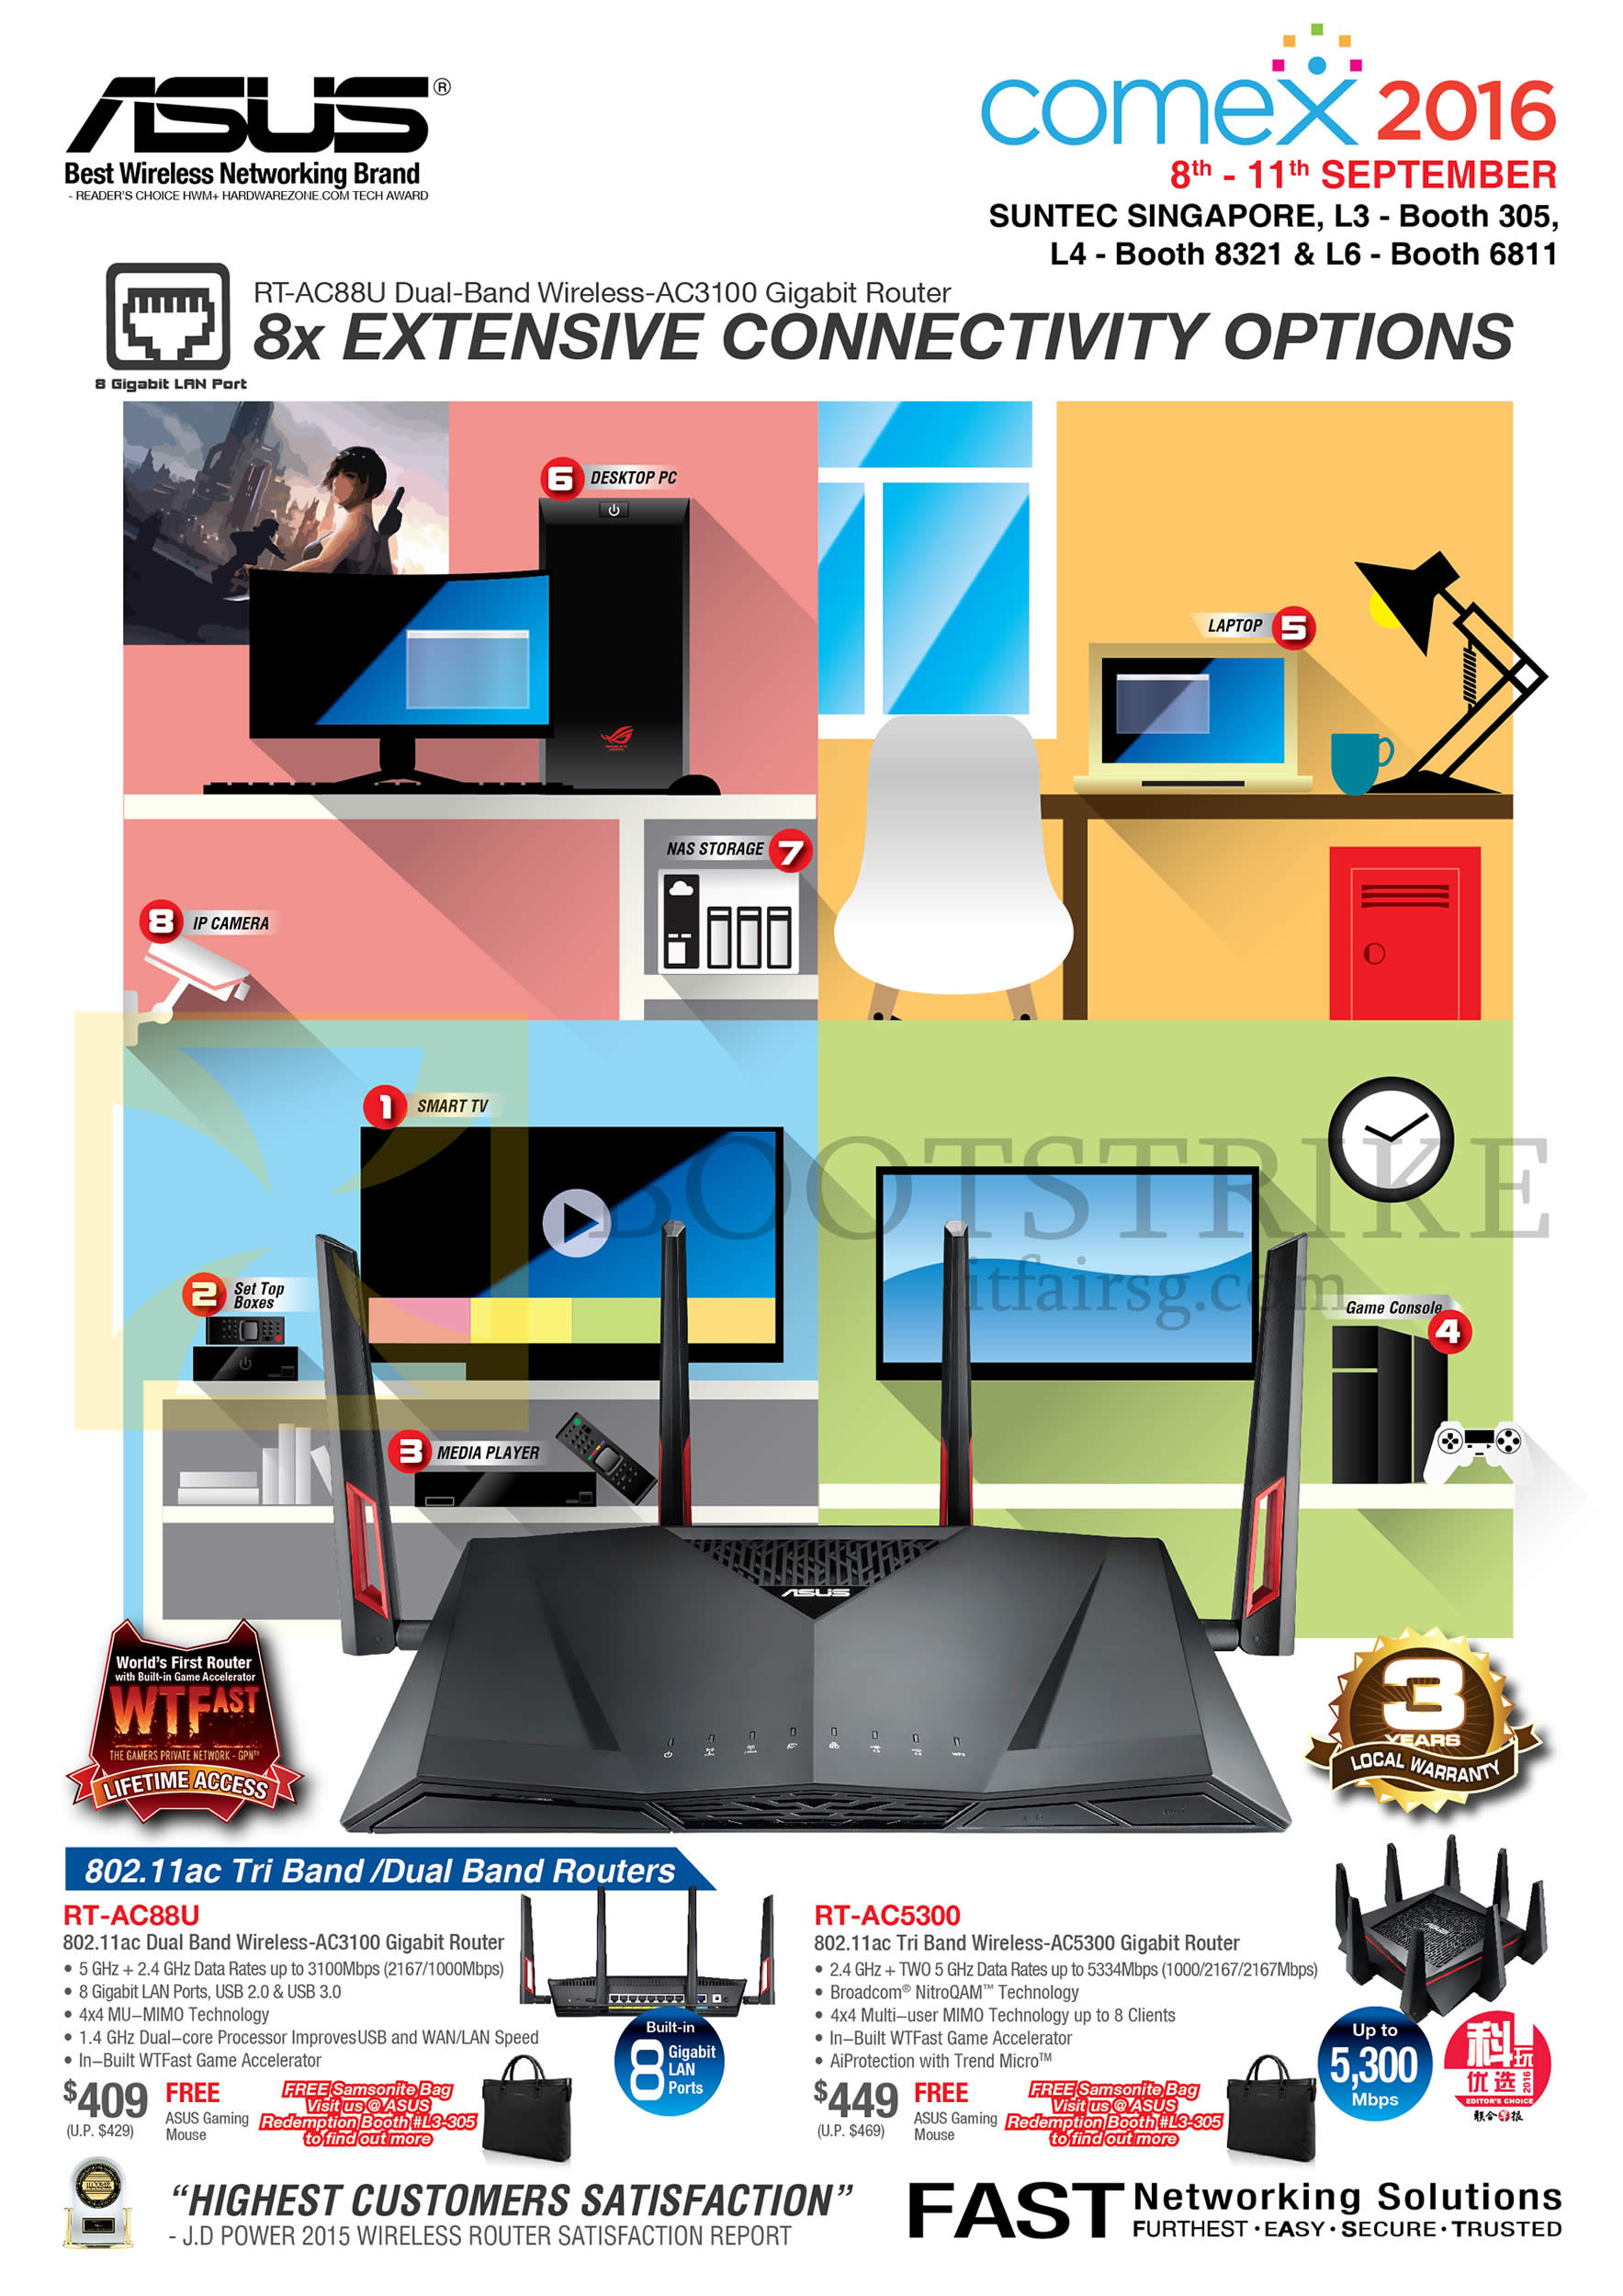 COMEX 2016 price list image brochure of ASUS Networking Wireless Routers RT-AC88U, RT-AC5300